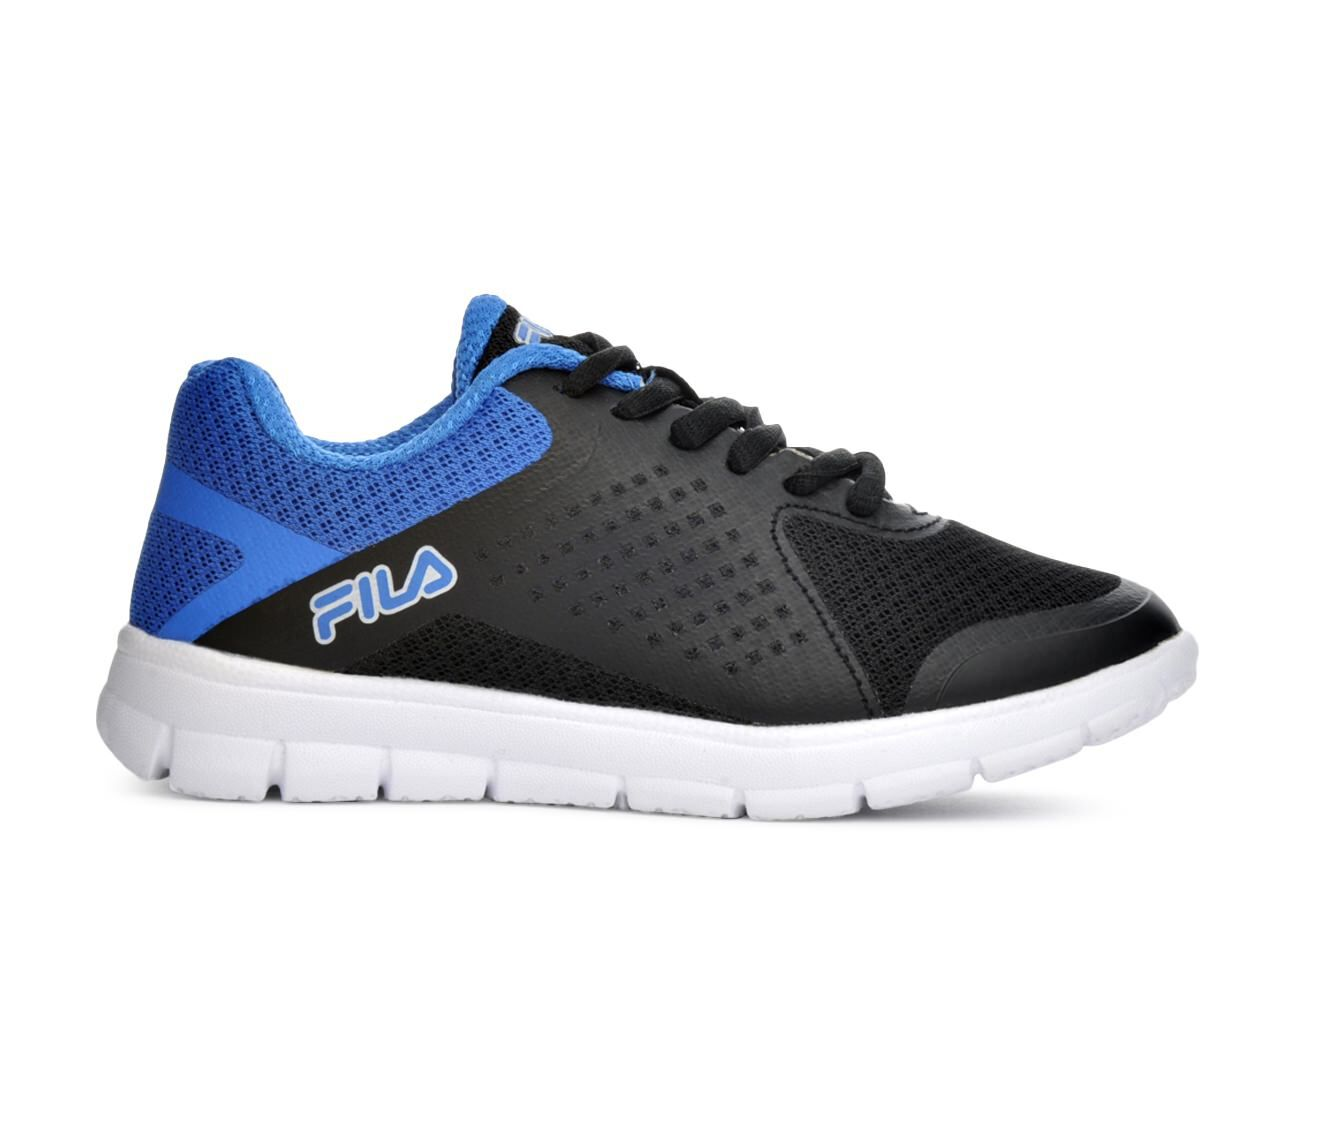 fila shoes gold